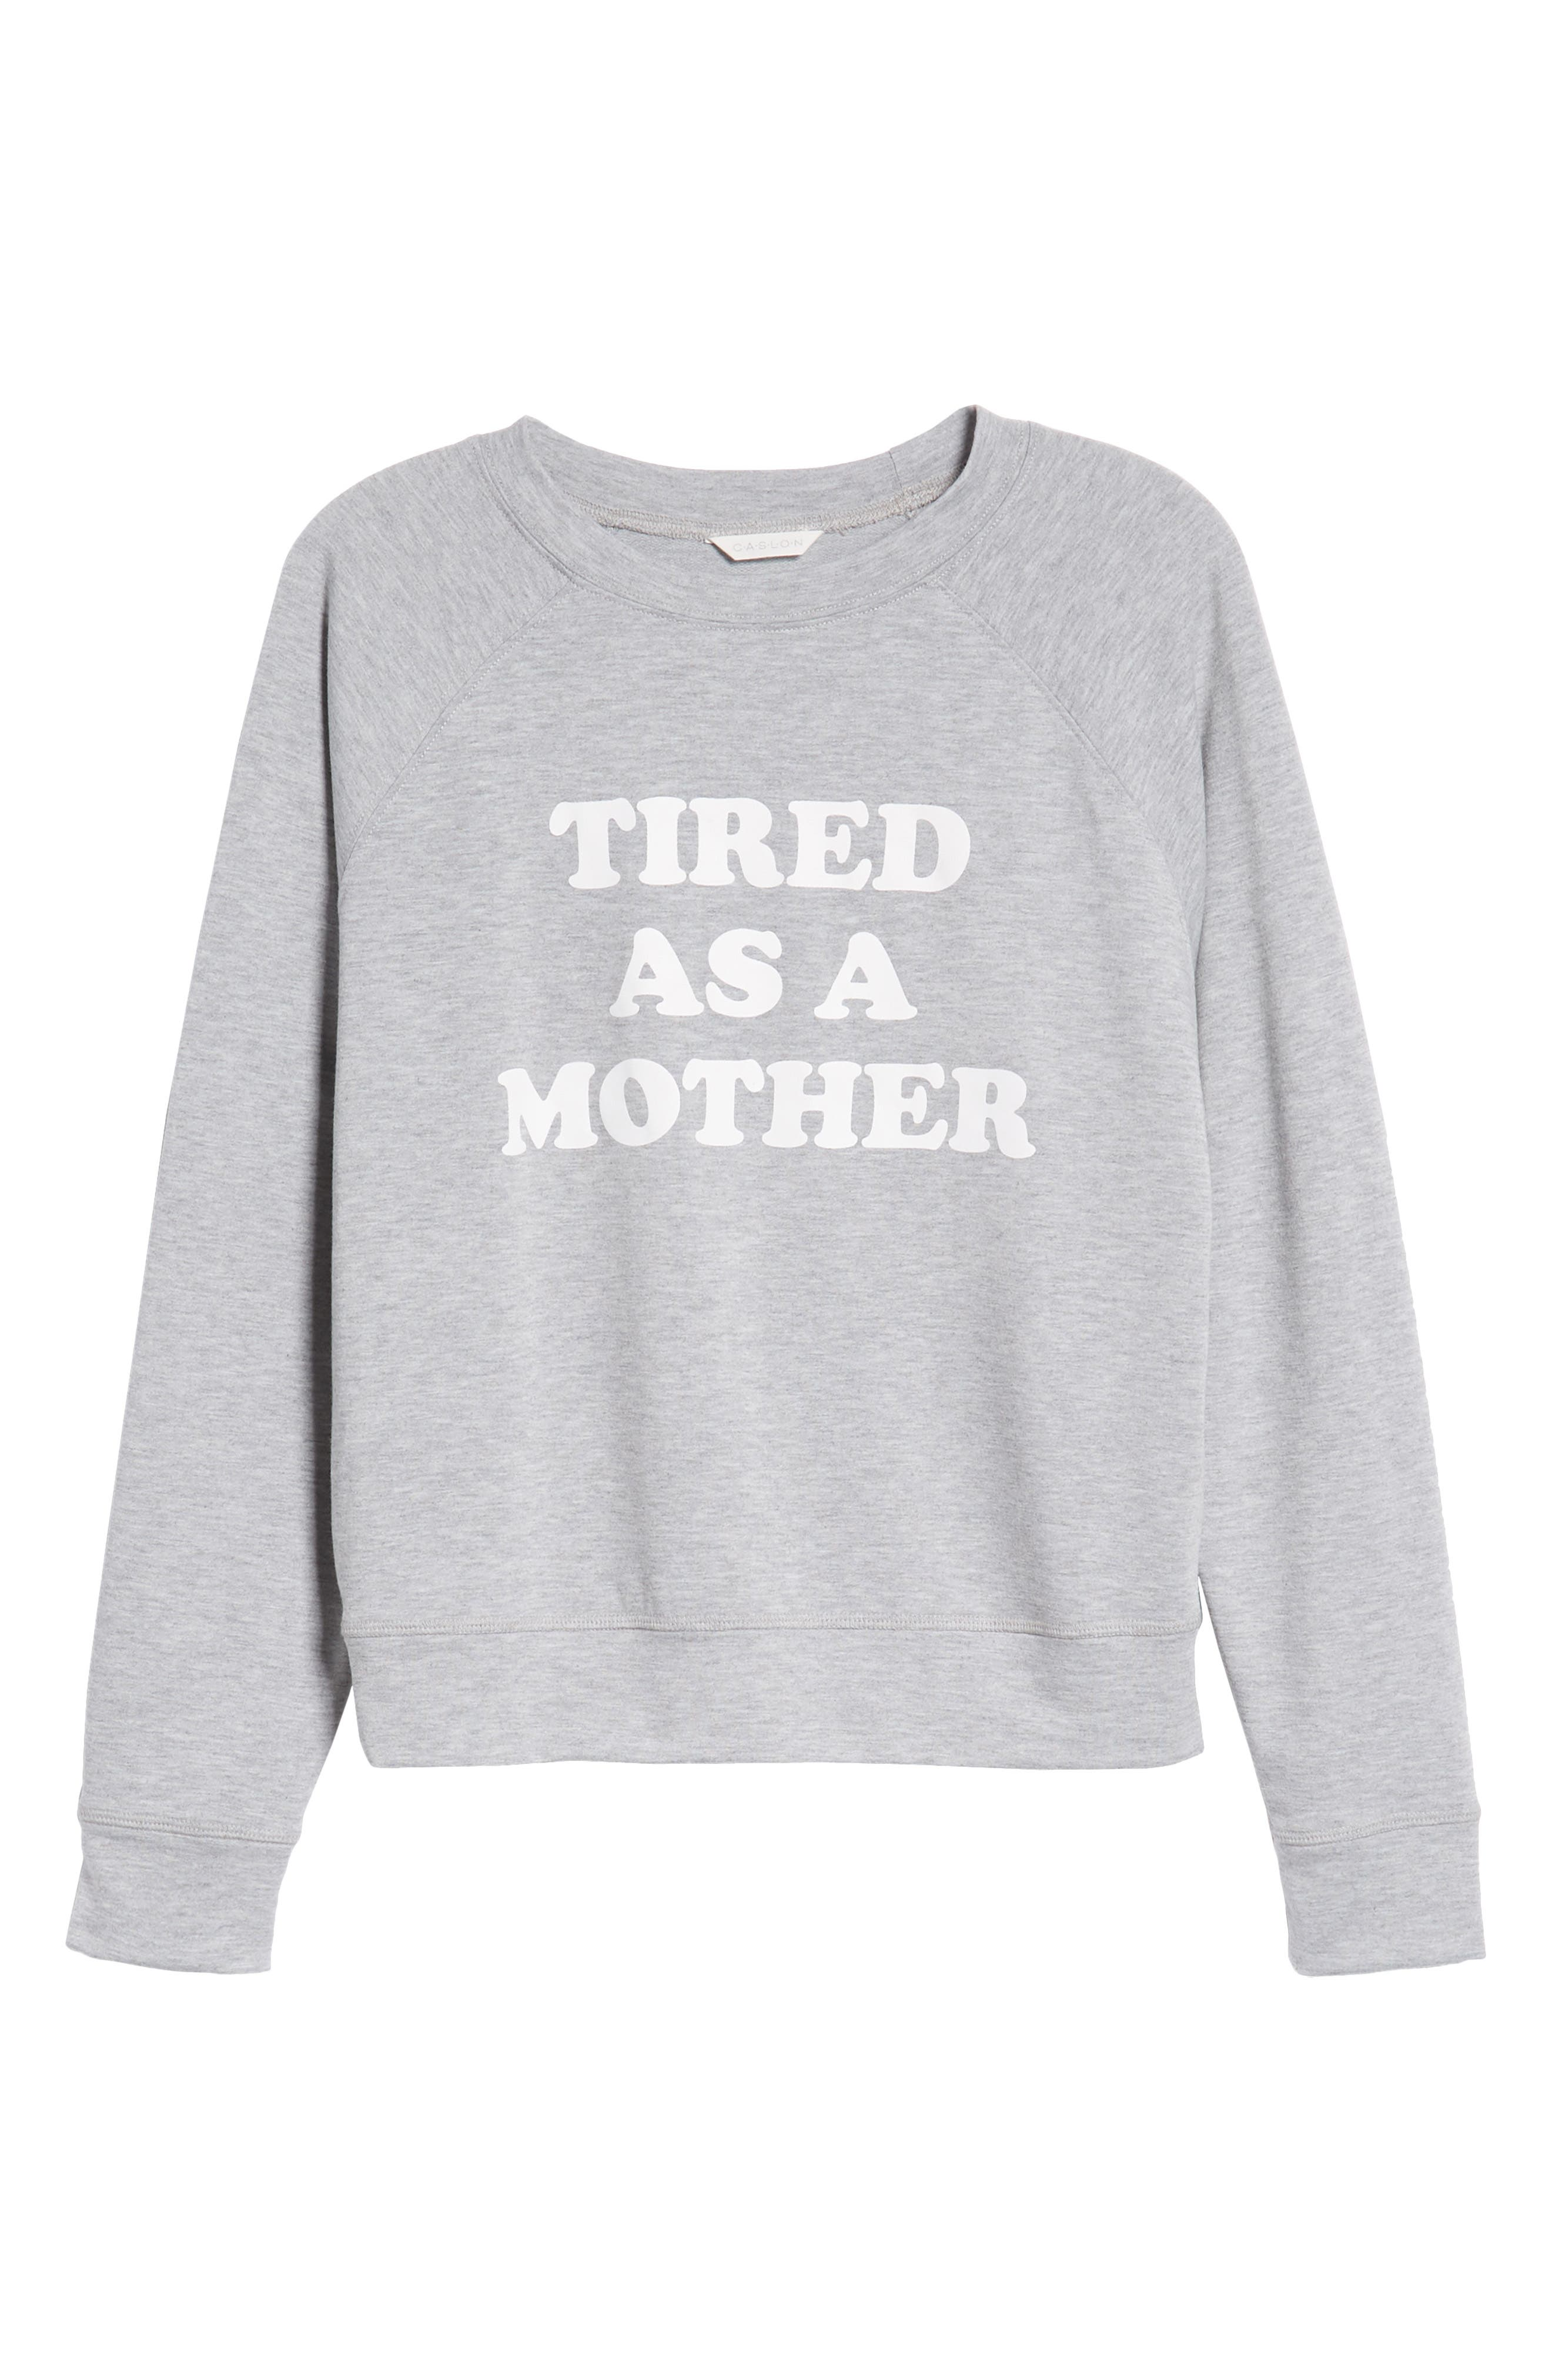 Off-Duty Tired as a Mother Sweatshirt,                             Alternate thumbnail 6, color,                             030